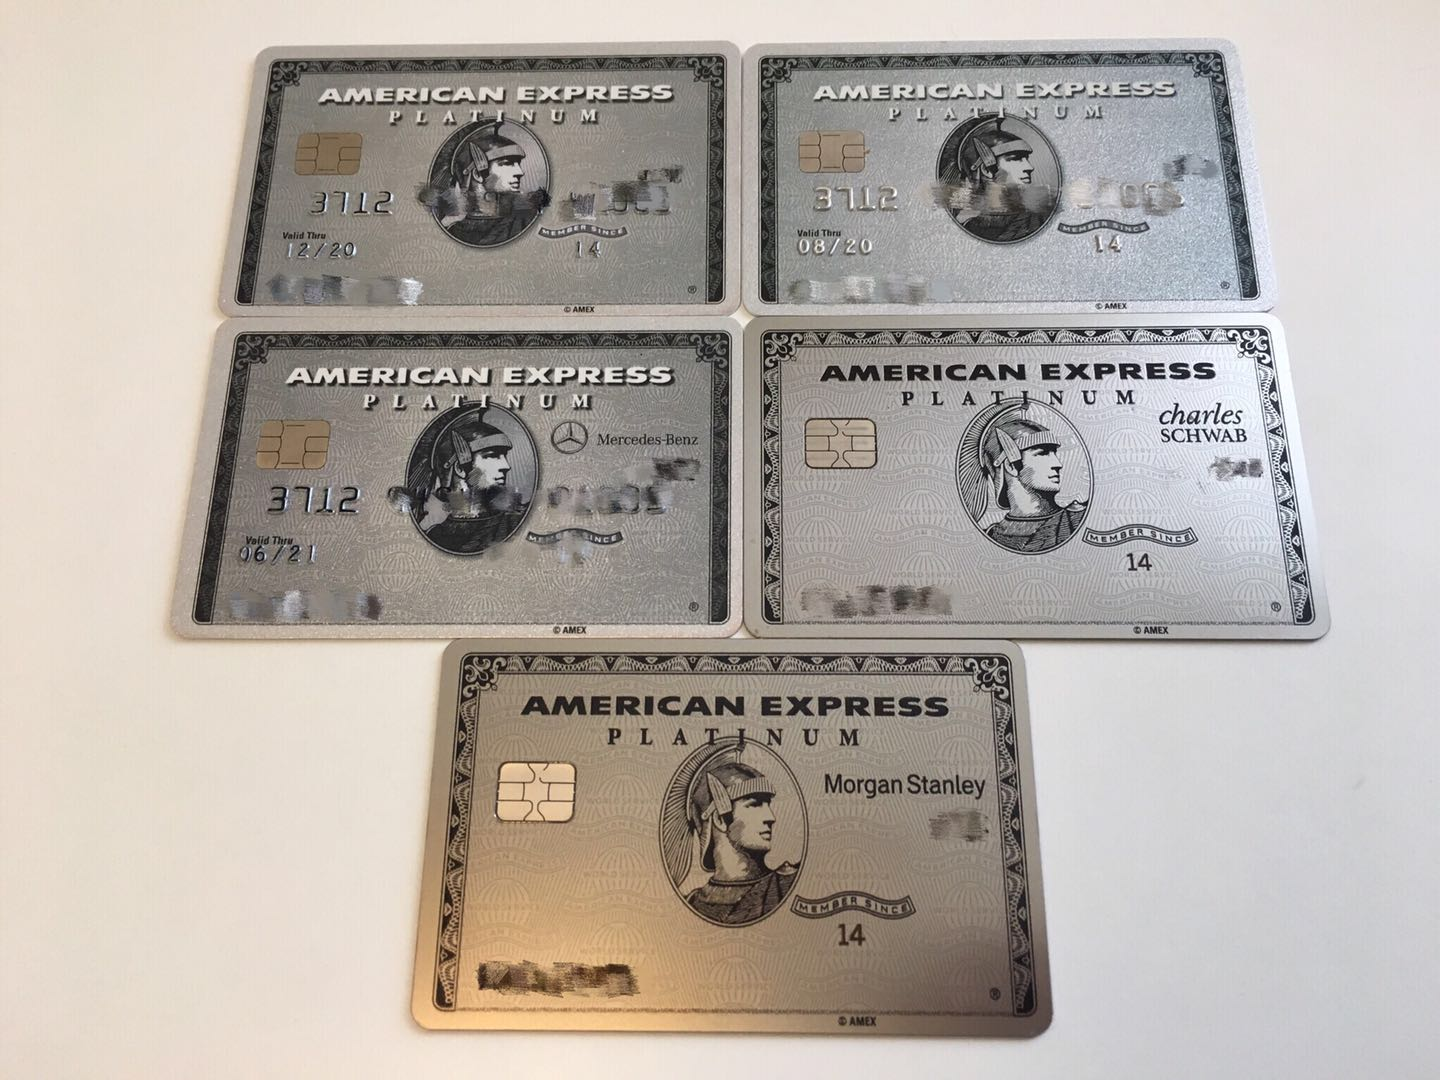 Comparing the Benefits of Different Flavors of AmEx Platinum